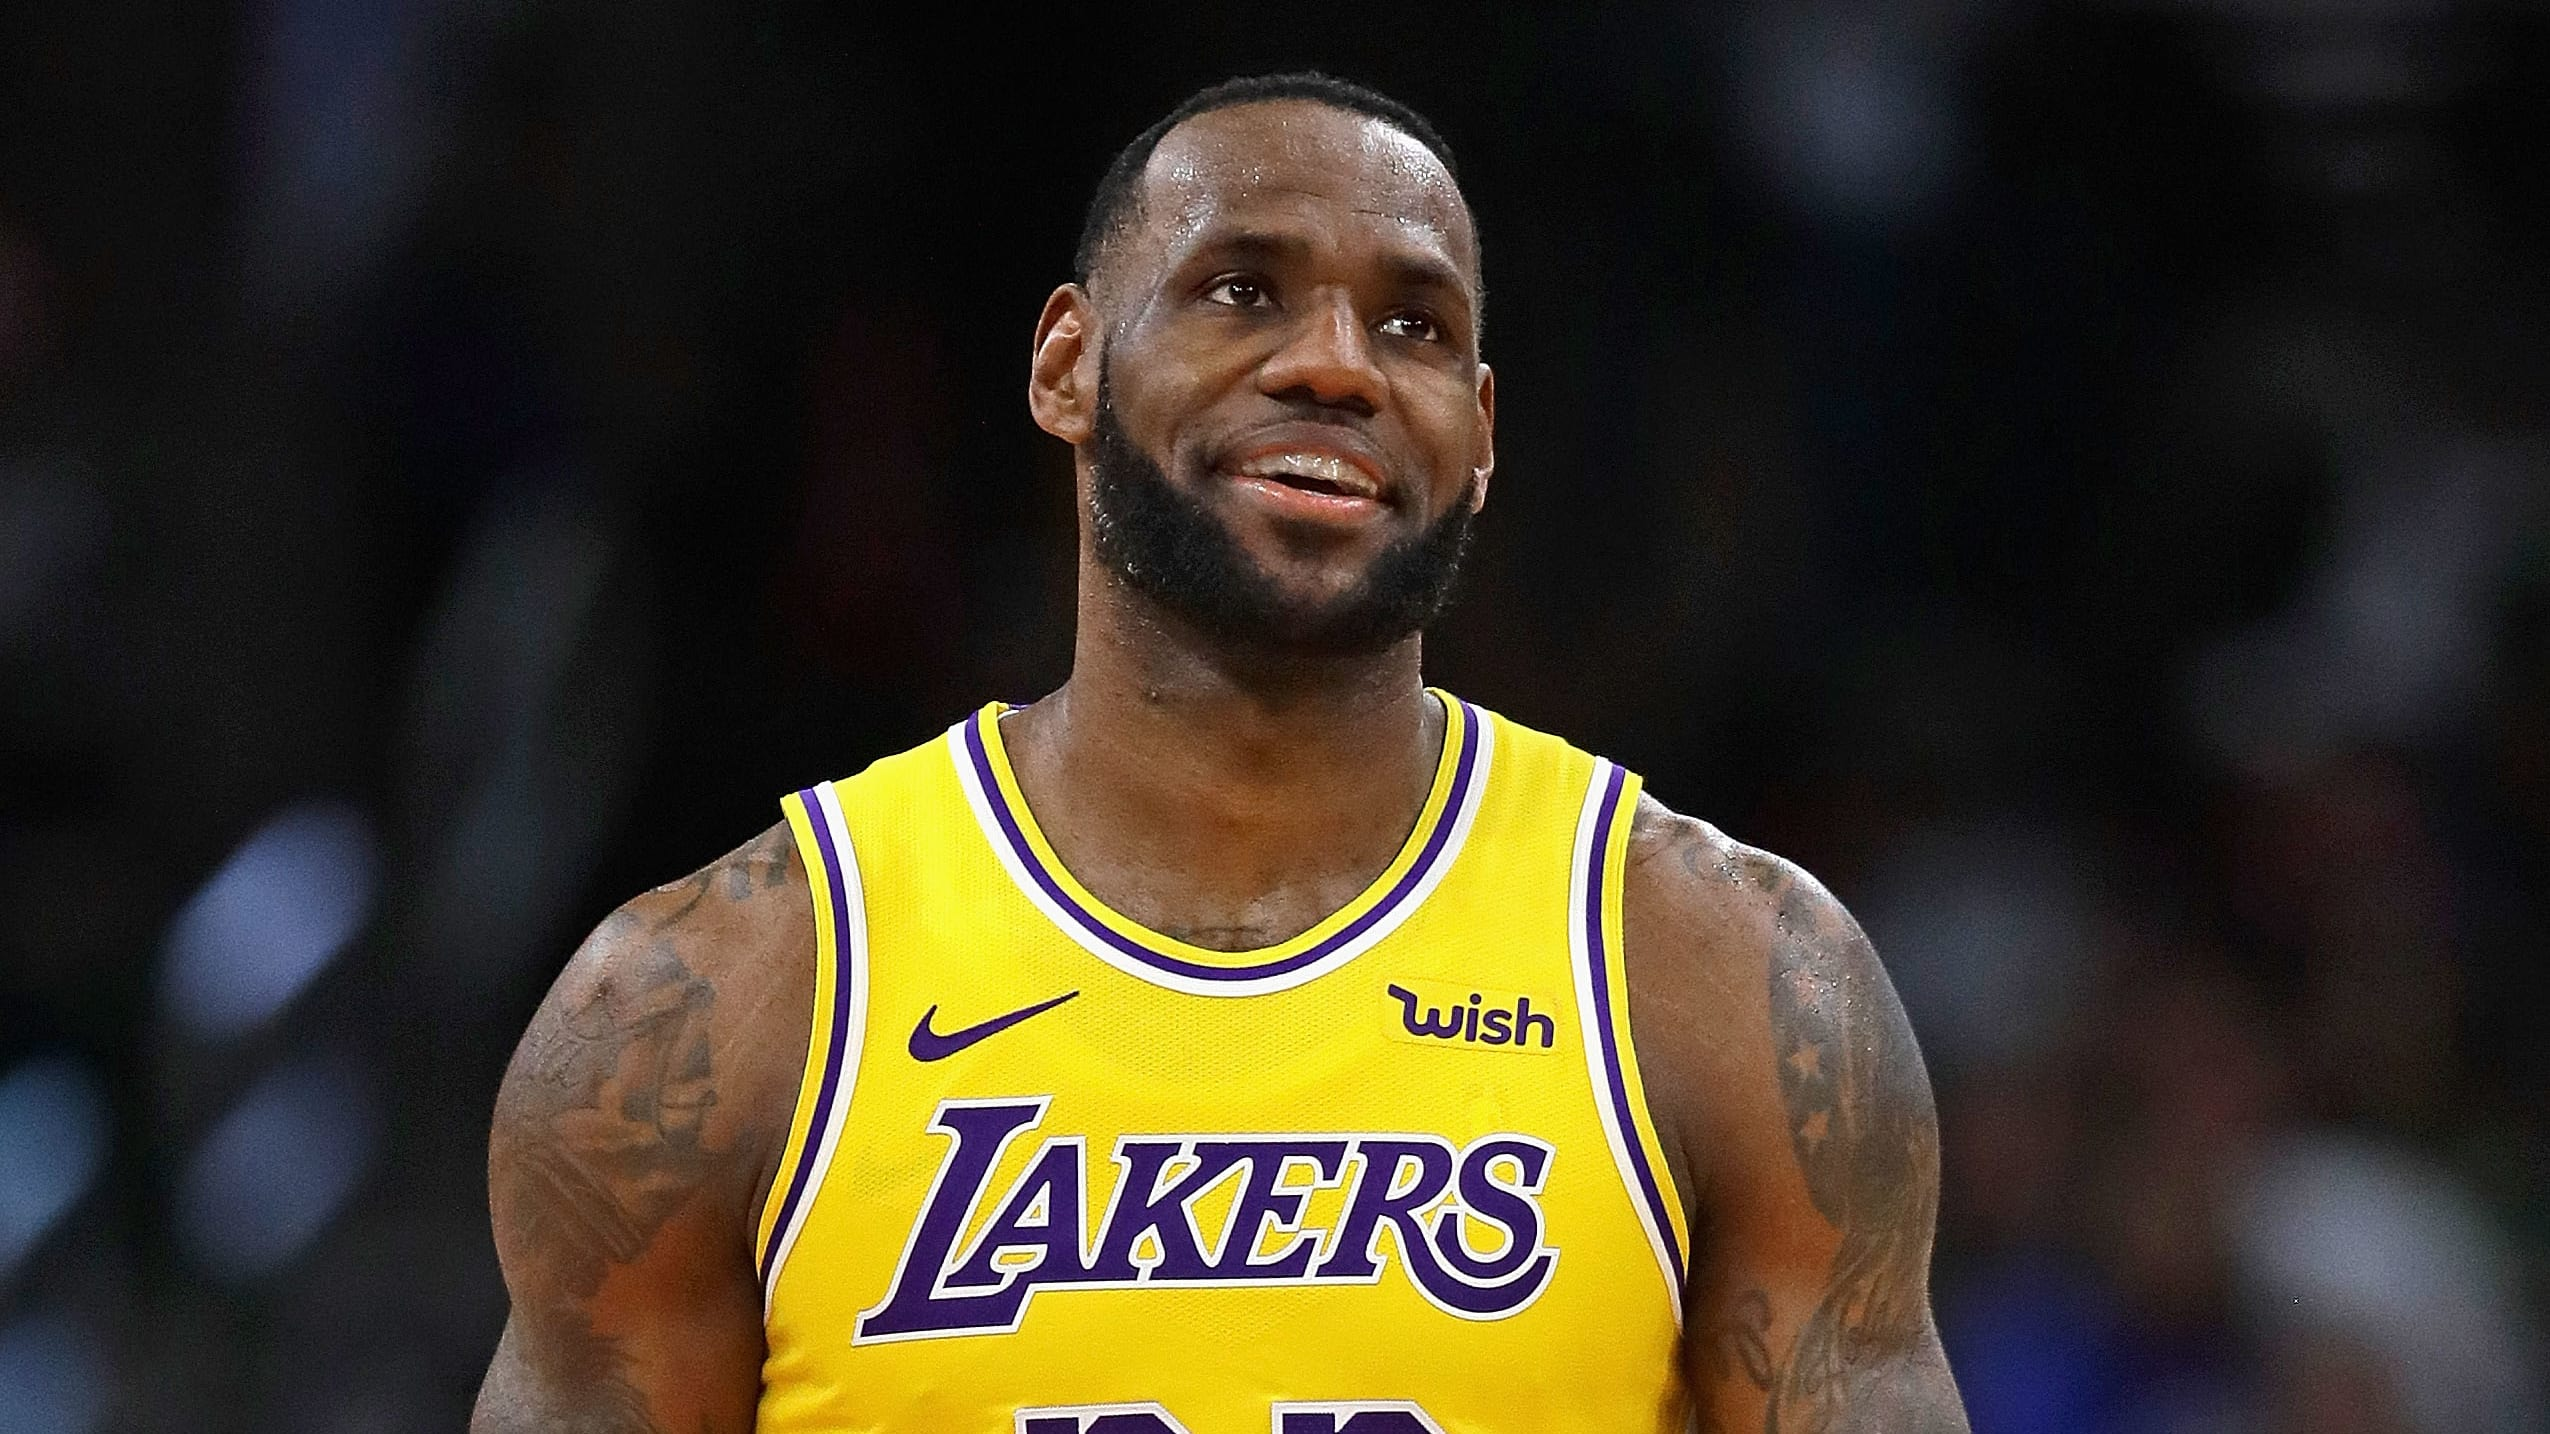 CHICAGO, ILLINOIS - MARCH 12: LeBron James #23 of the Los Angeles Lakers smiles after a play against the Chicago Bulls at the United Center on March 12, 2019 in Chicago, Illinois. The Lakers defeated the Bulls 123-107. NOTE TO USER: User expressly acknowledges and agrees that, by downloading and or using this photograph, User is consenting to the terms and conditions of the Getty Images License Agreement. (Photo by Jonathan Daniel/Getty Images)